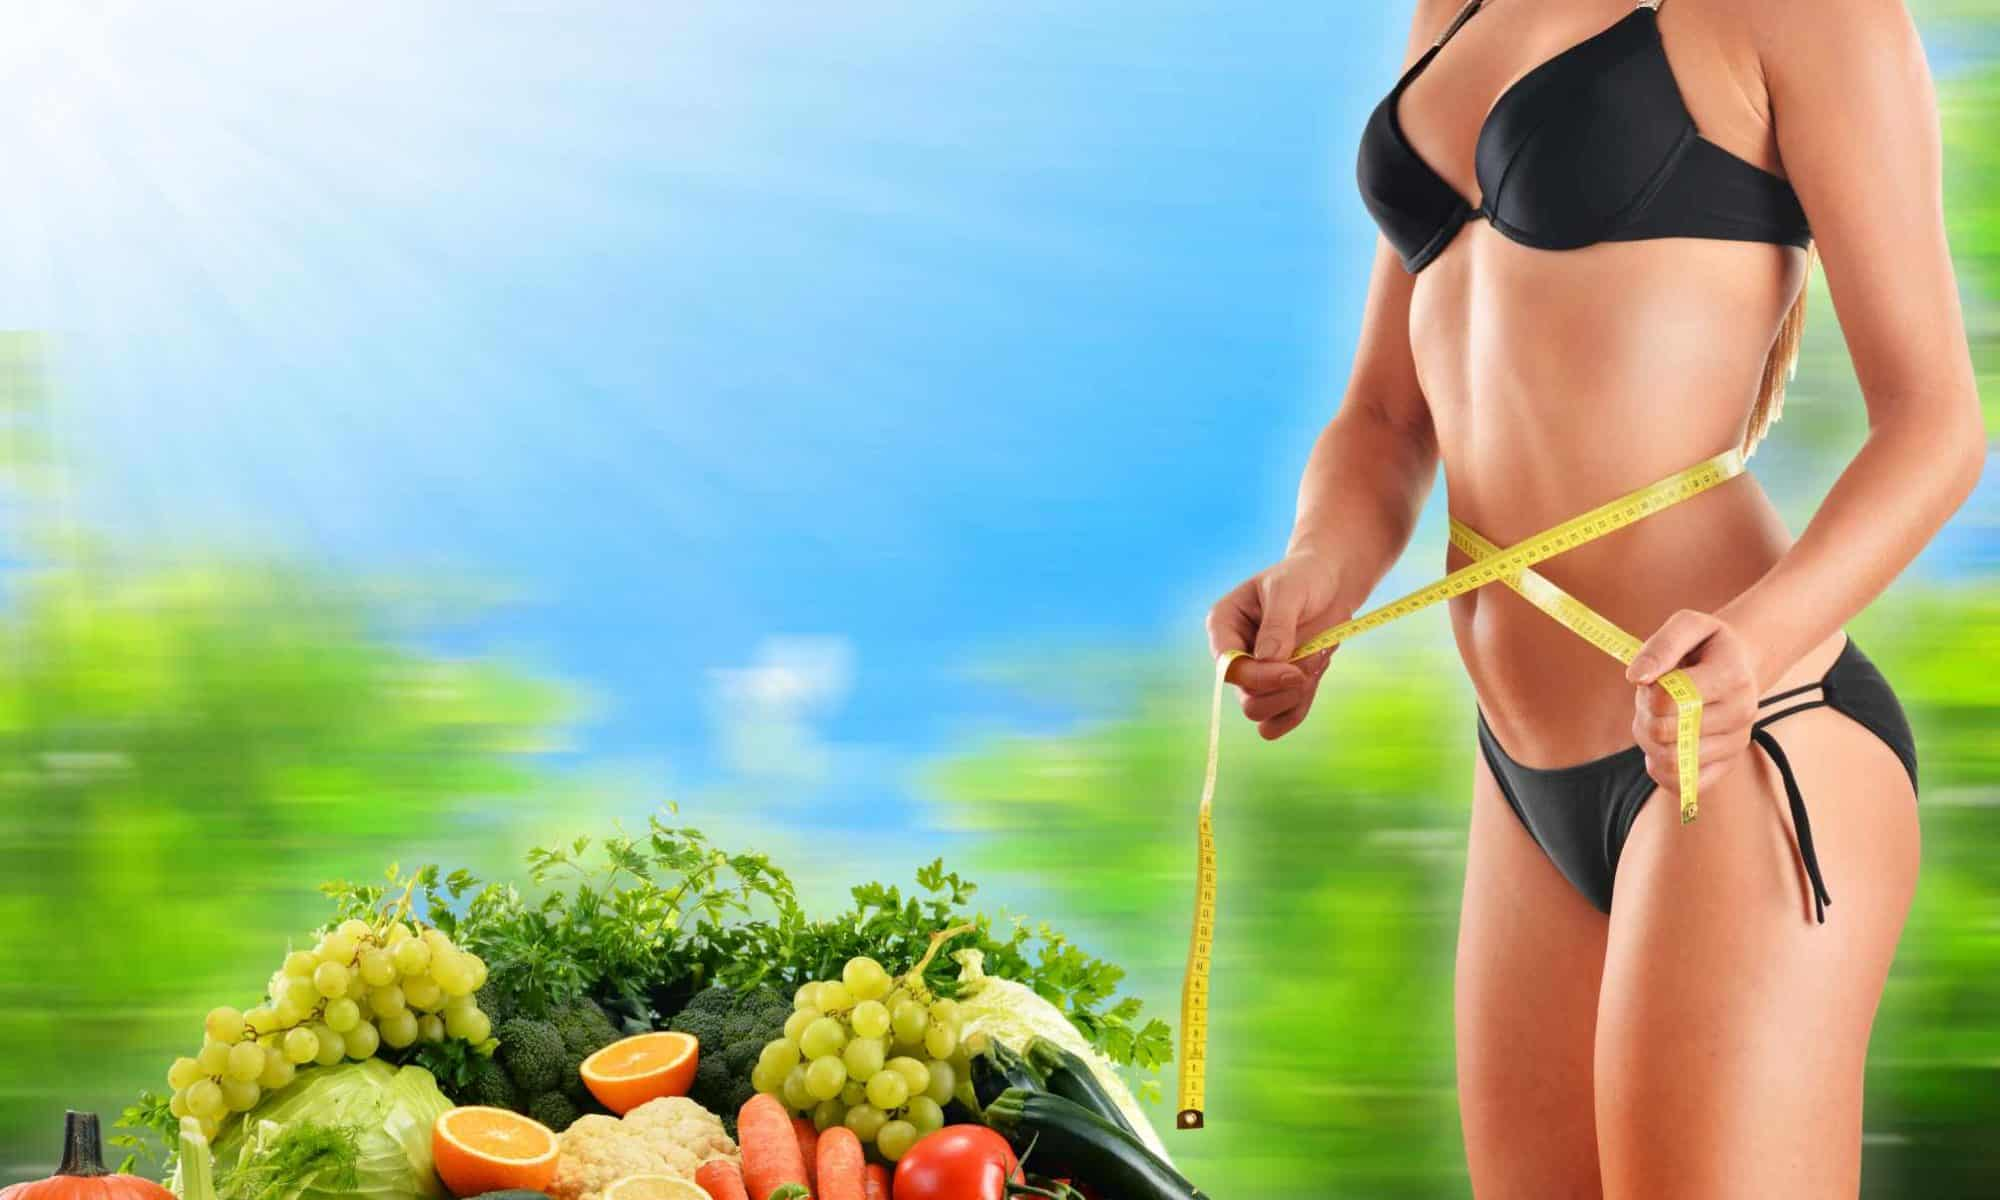 Medical And Prescription Weight Loss Based On Metabolic Health In Tampa Bay Near Usf